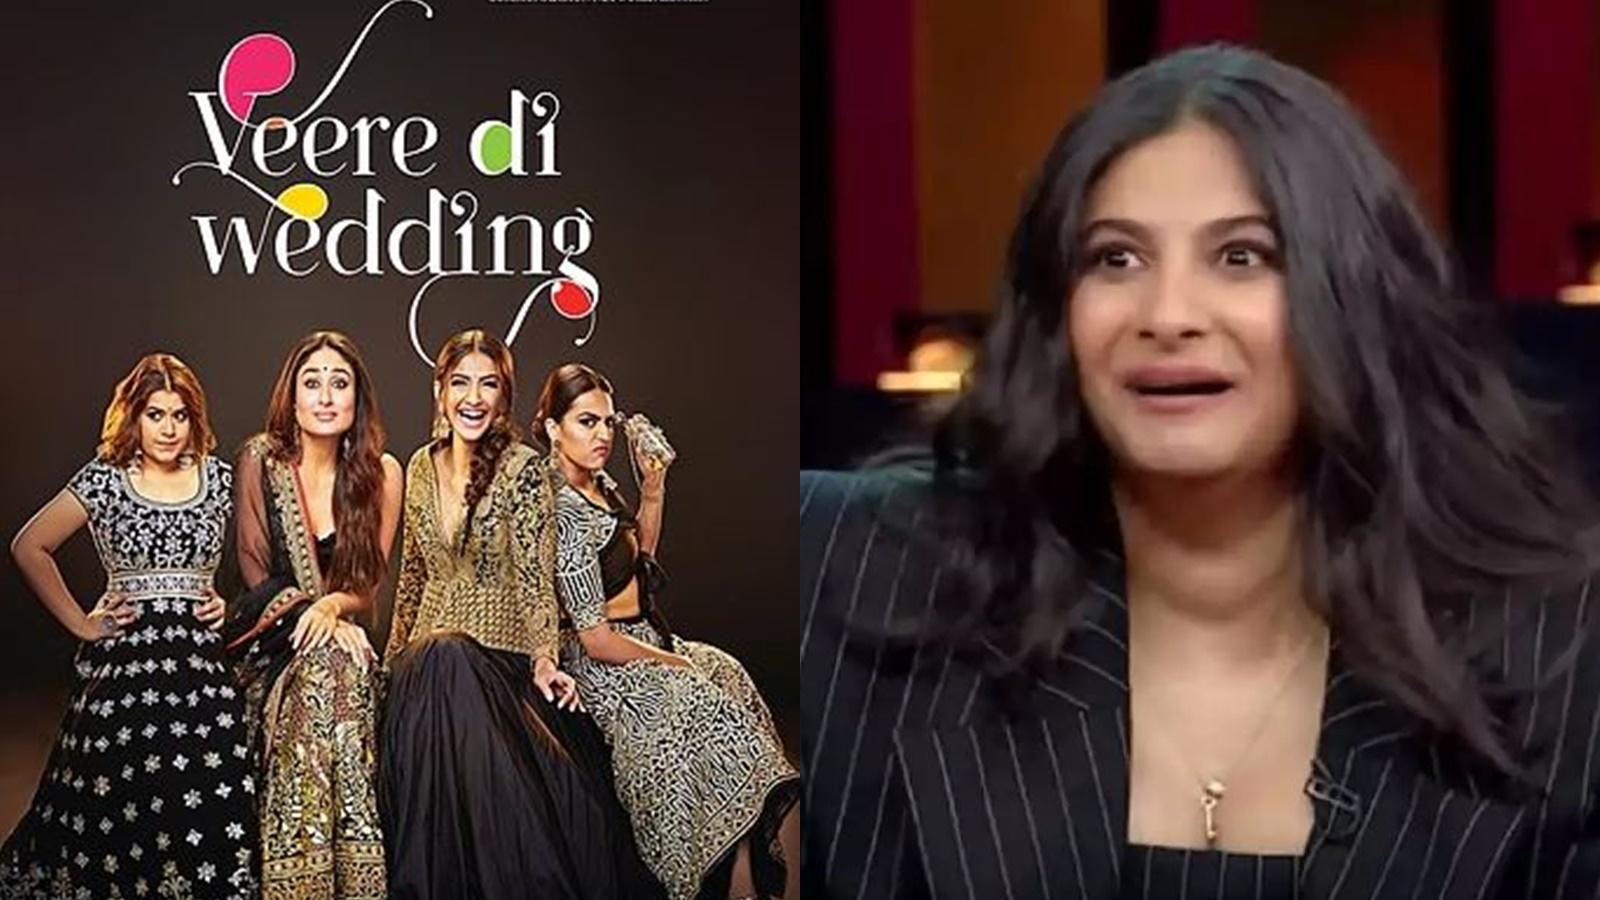 veere-di-wedding-sequel-put-on-back-burner-by-rhea-kapoor